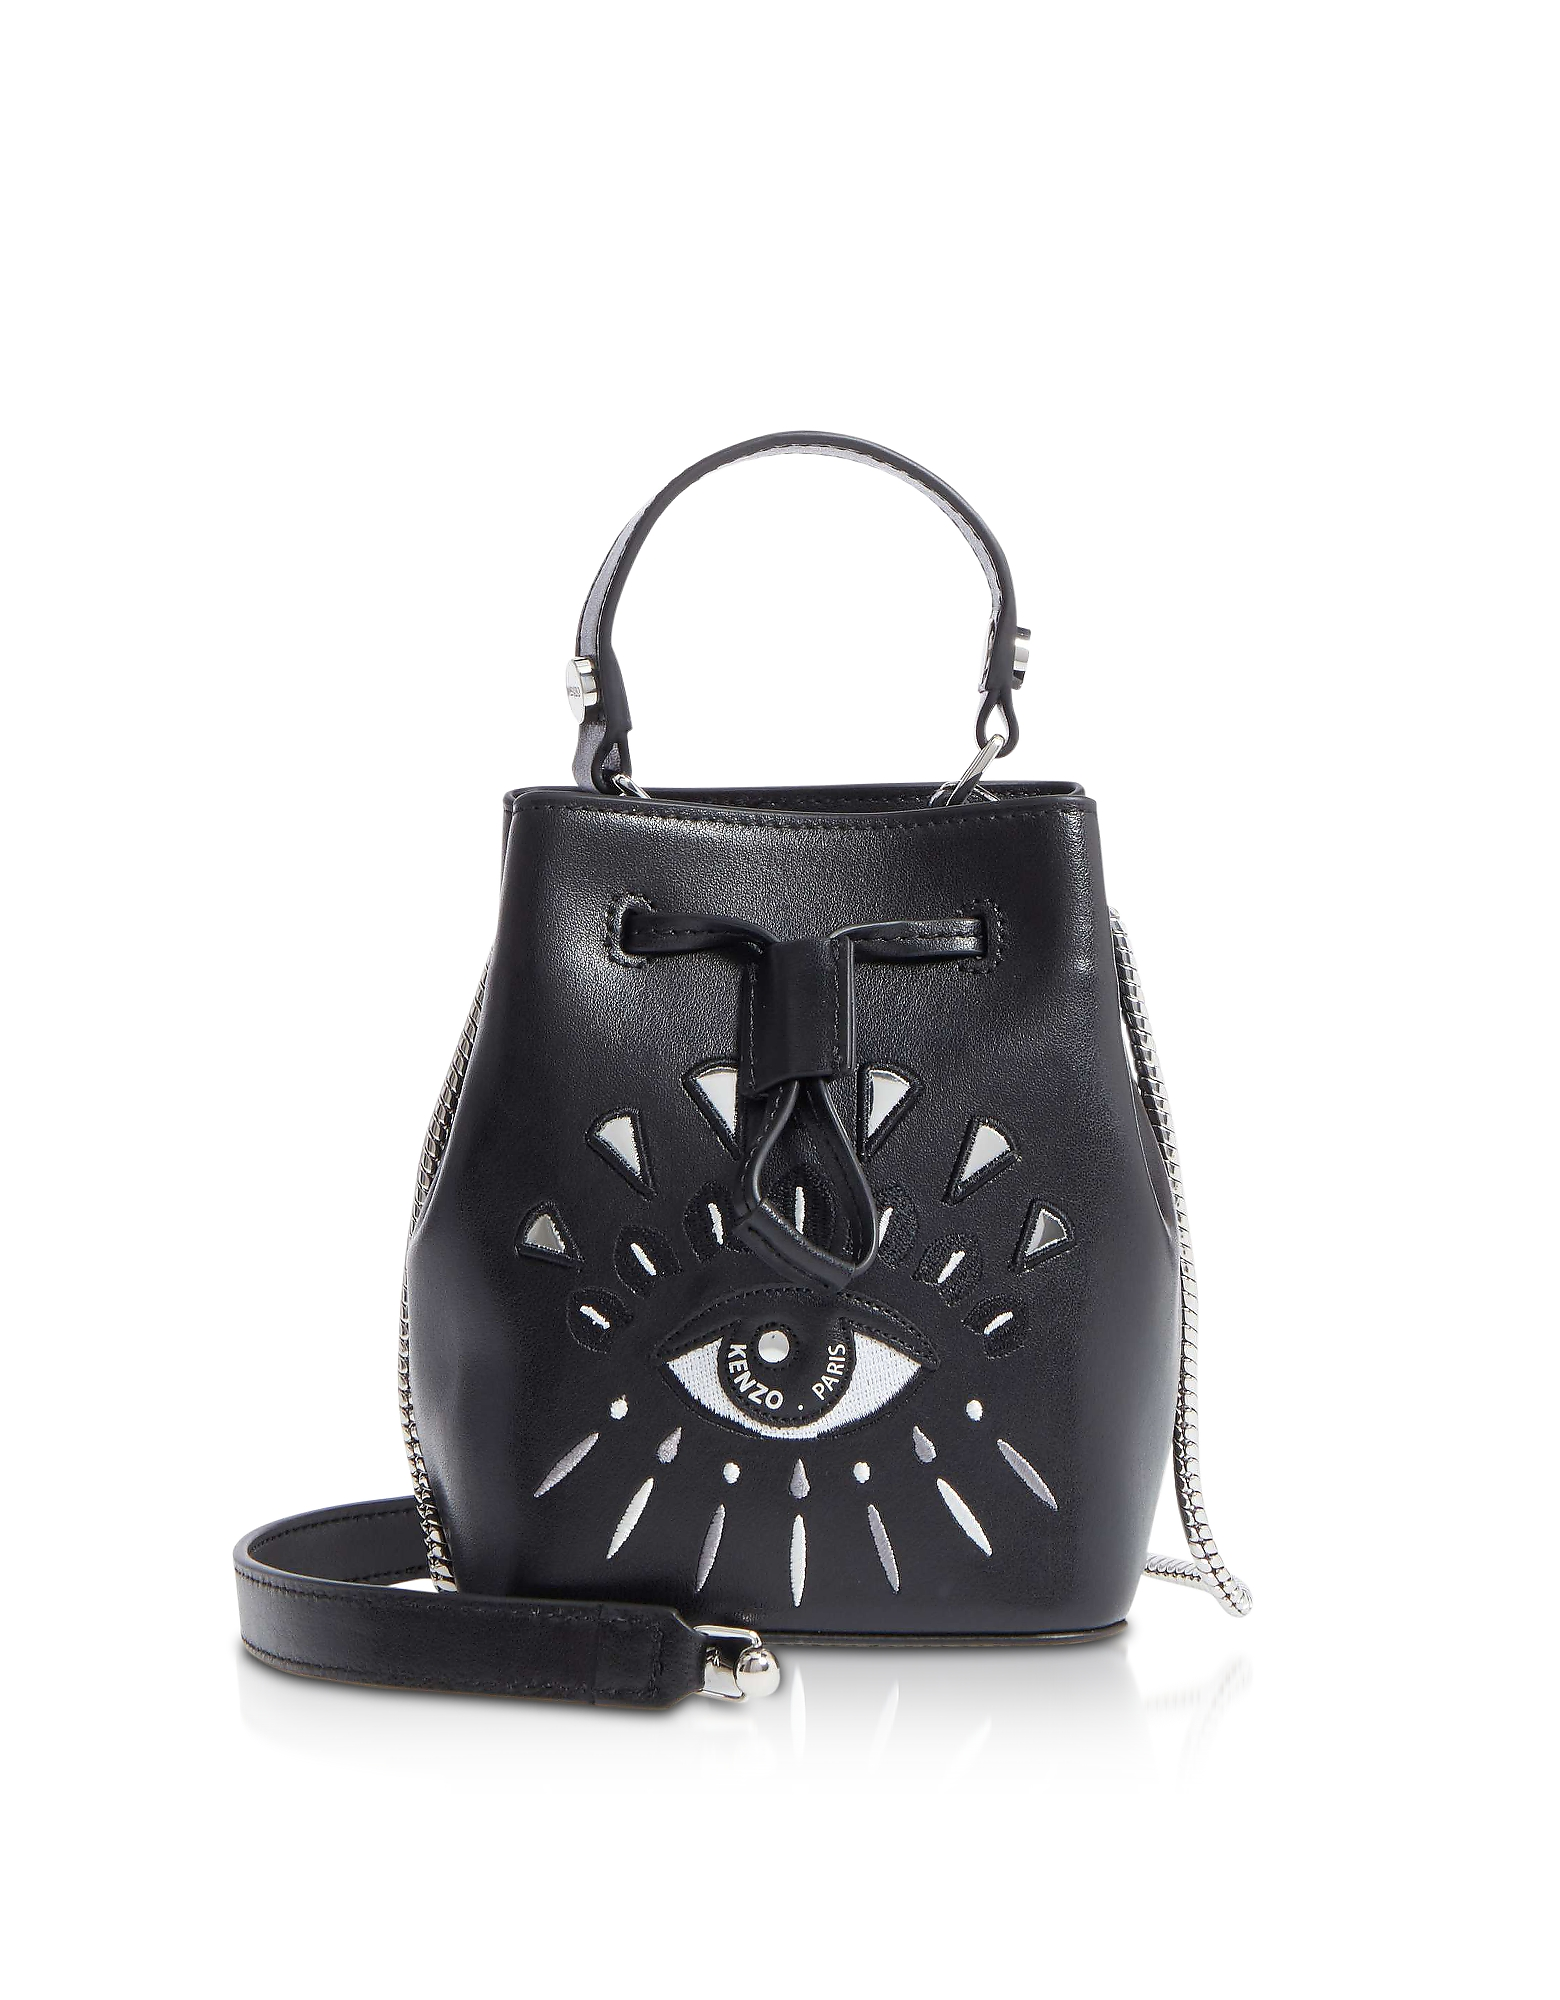 Kenzo Handbags, Eye Black Leather Mini Bucket Bag